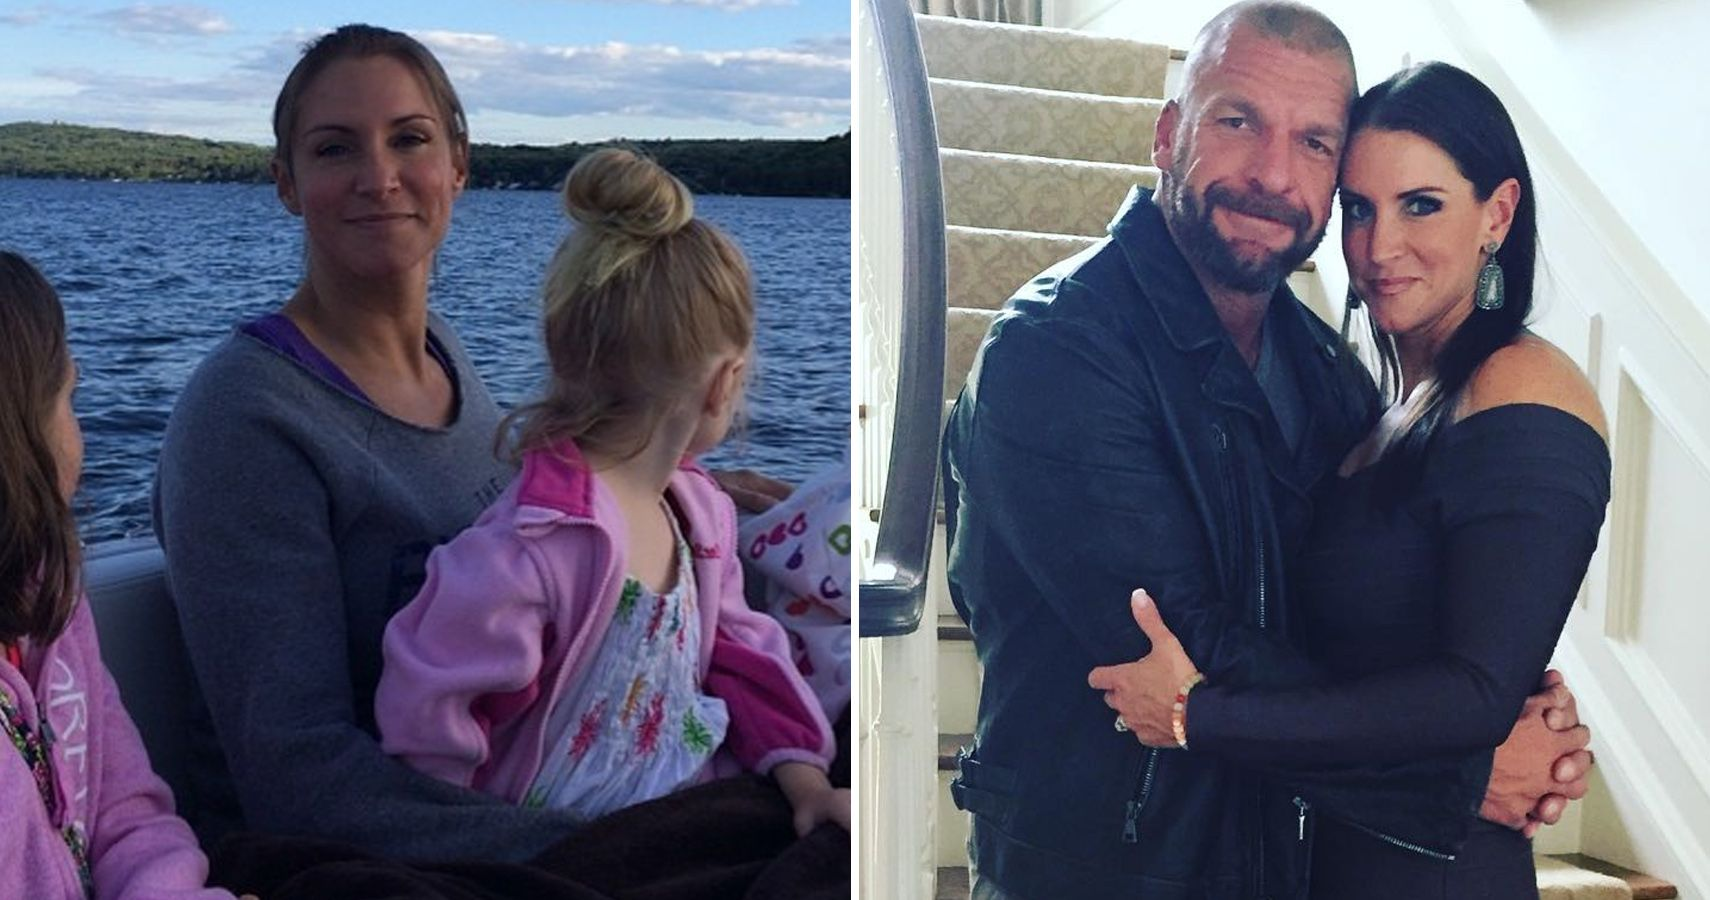 MustSee Personal Pictures Of Triple H And Stephanie McMahon